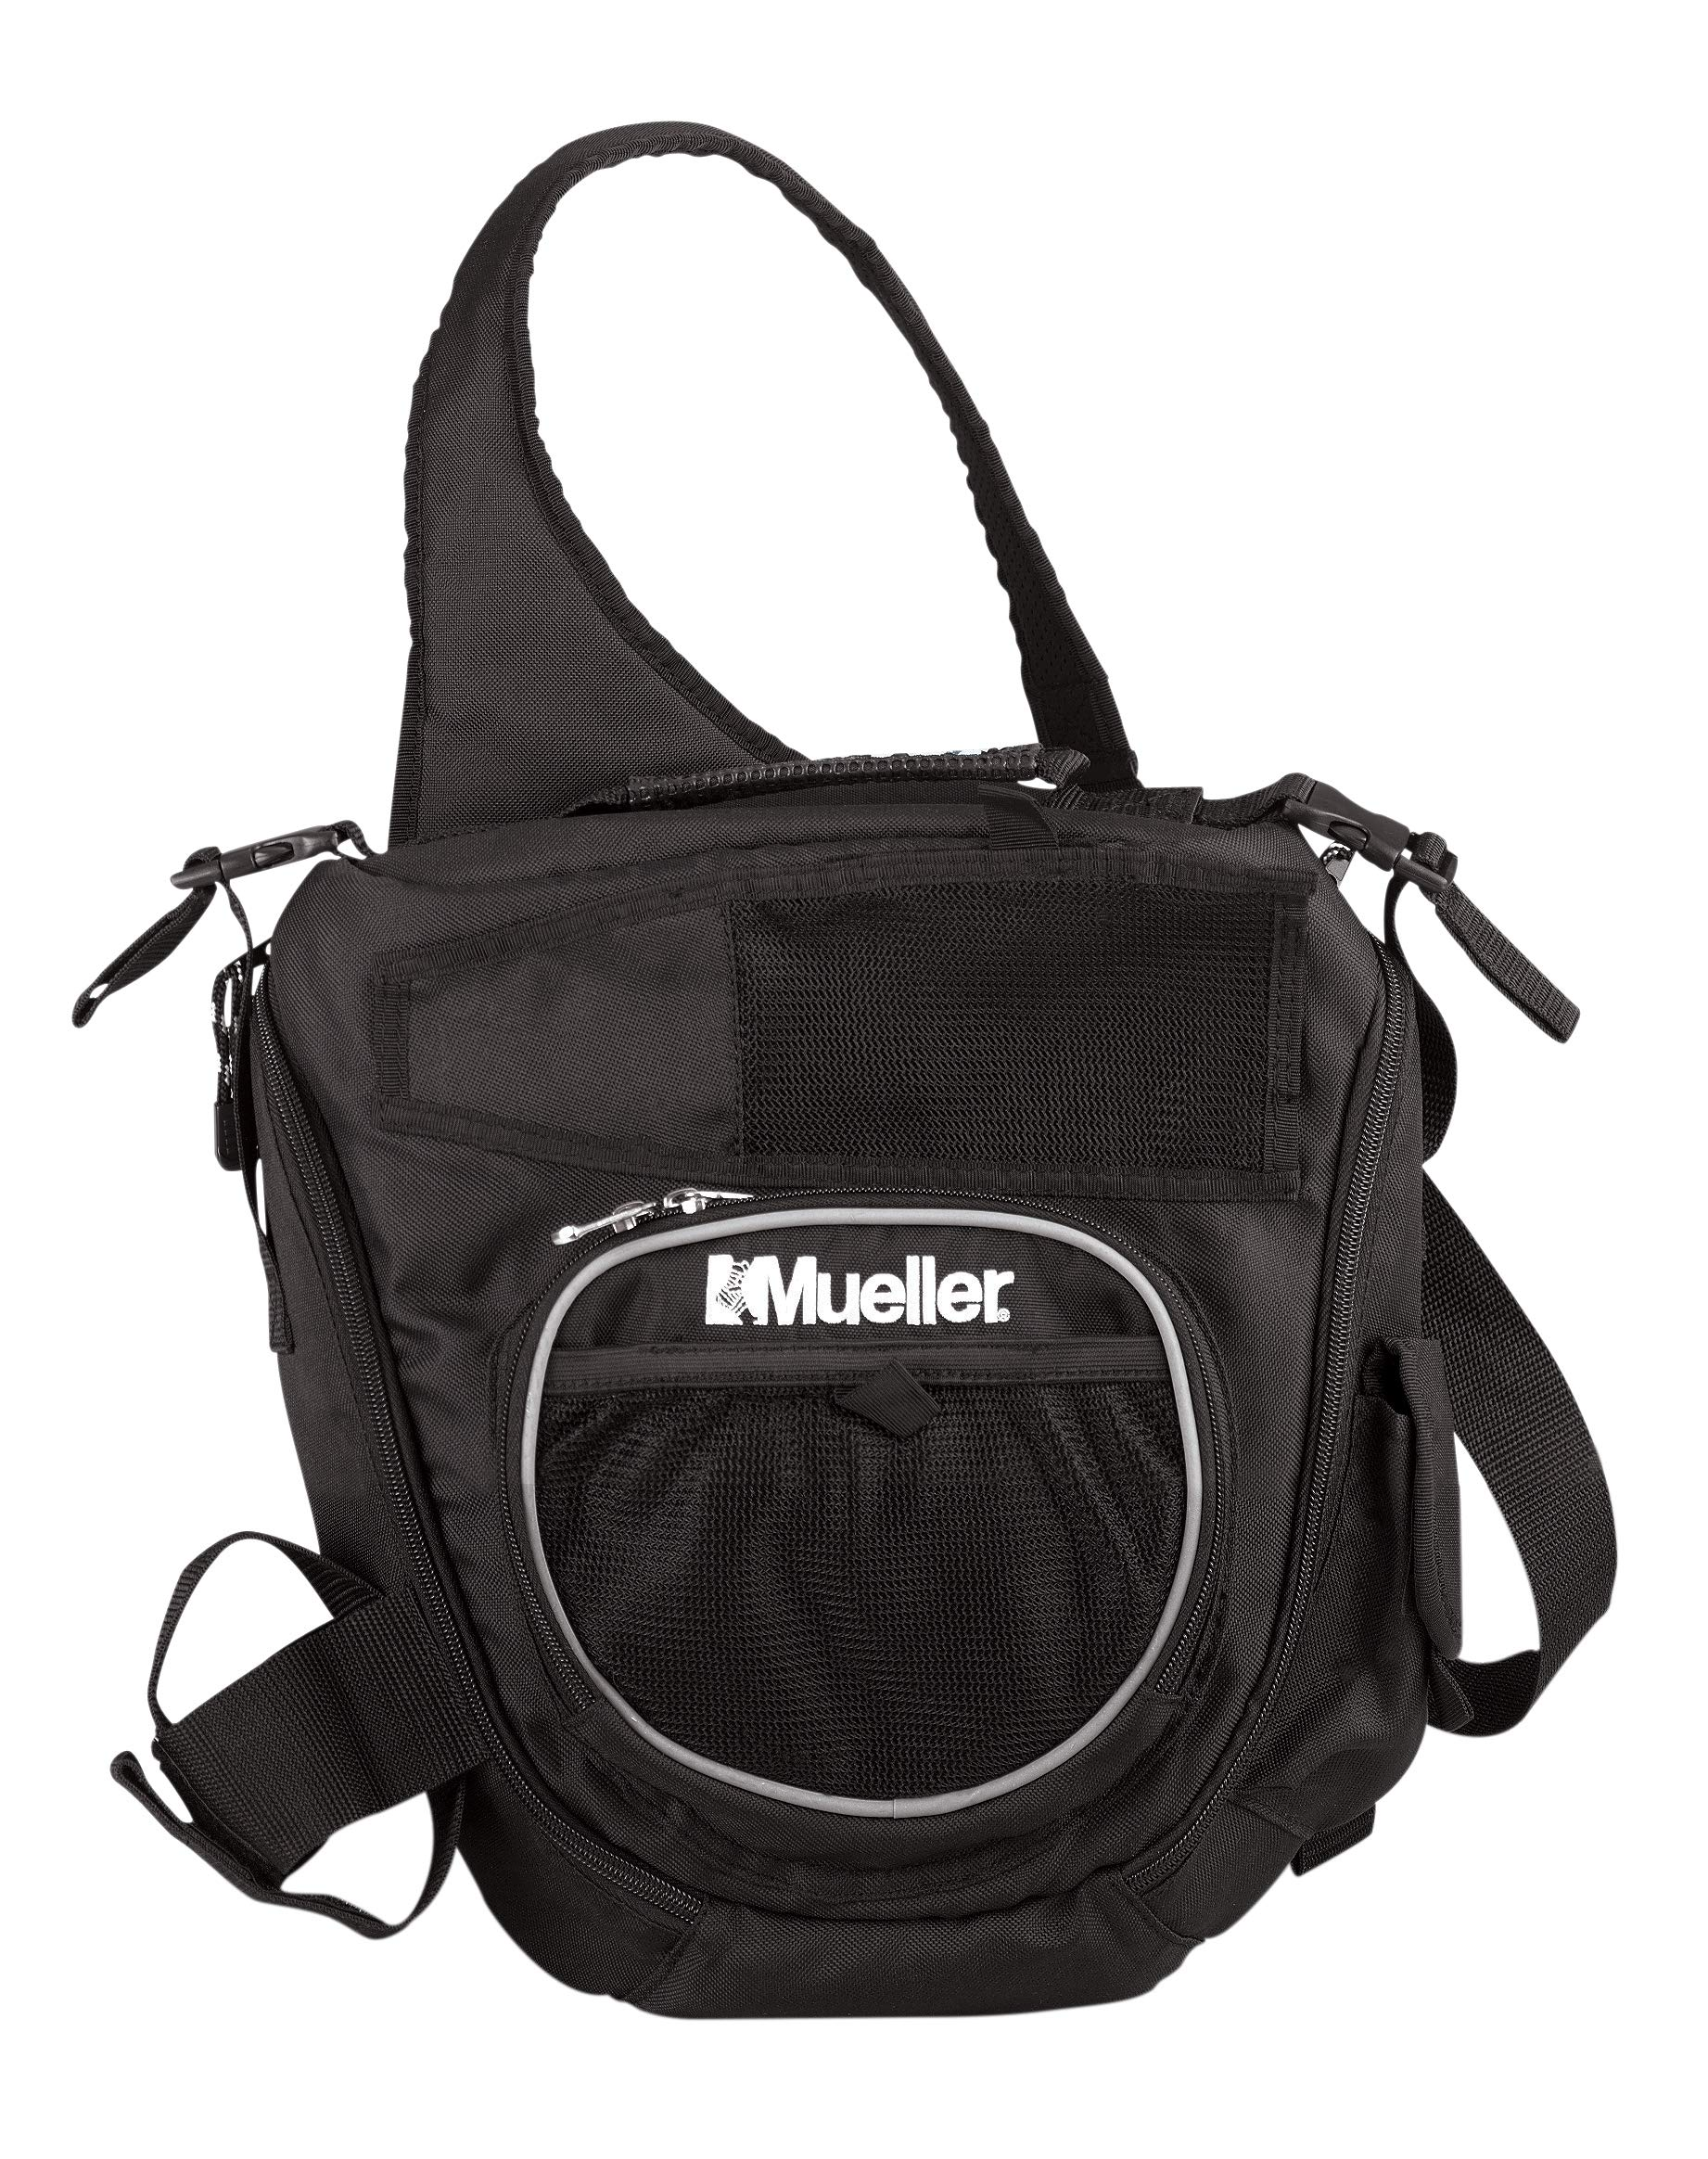 Mueller Sling Bag Athletic Trainer's Kit, Empty |Small Capacity Shoulder Sling AT Bag by Mueller